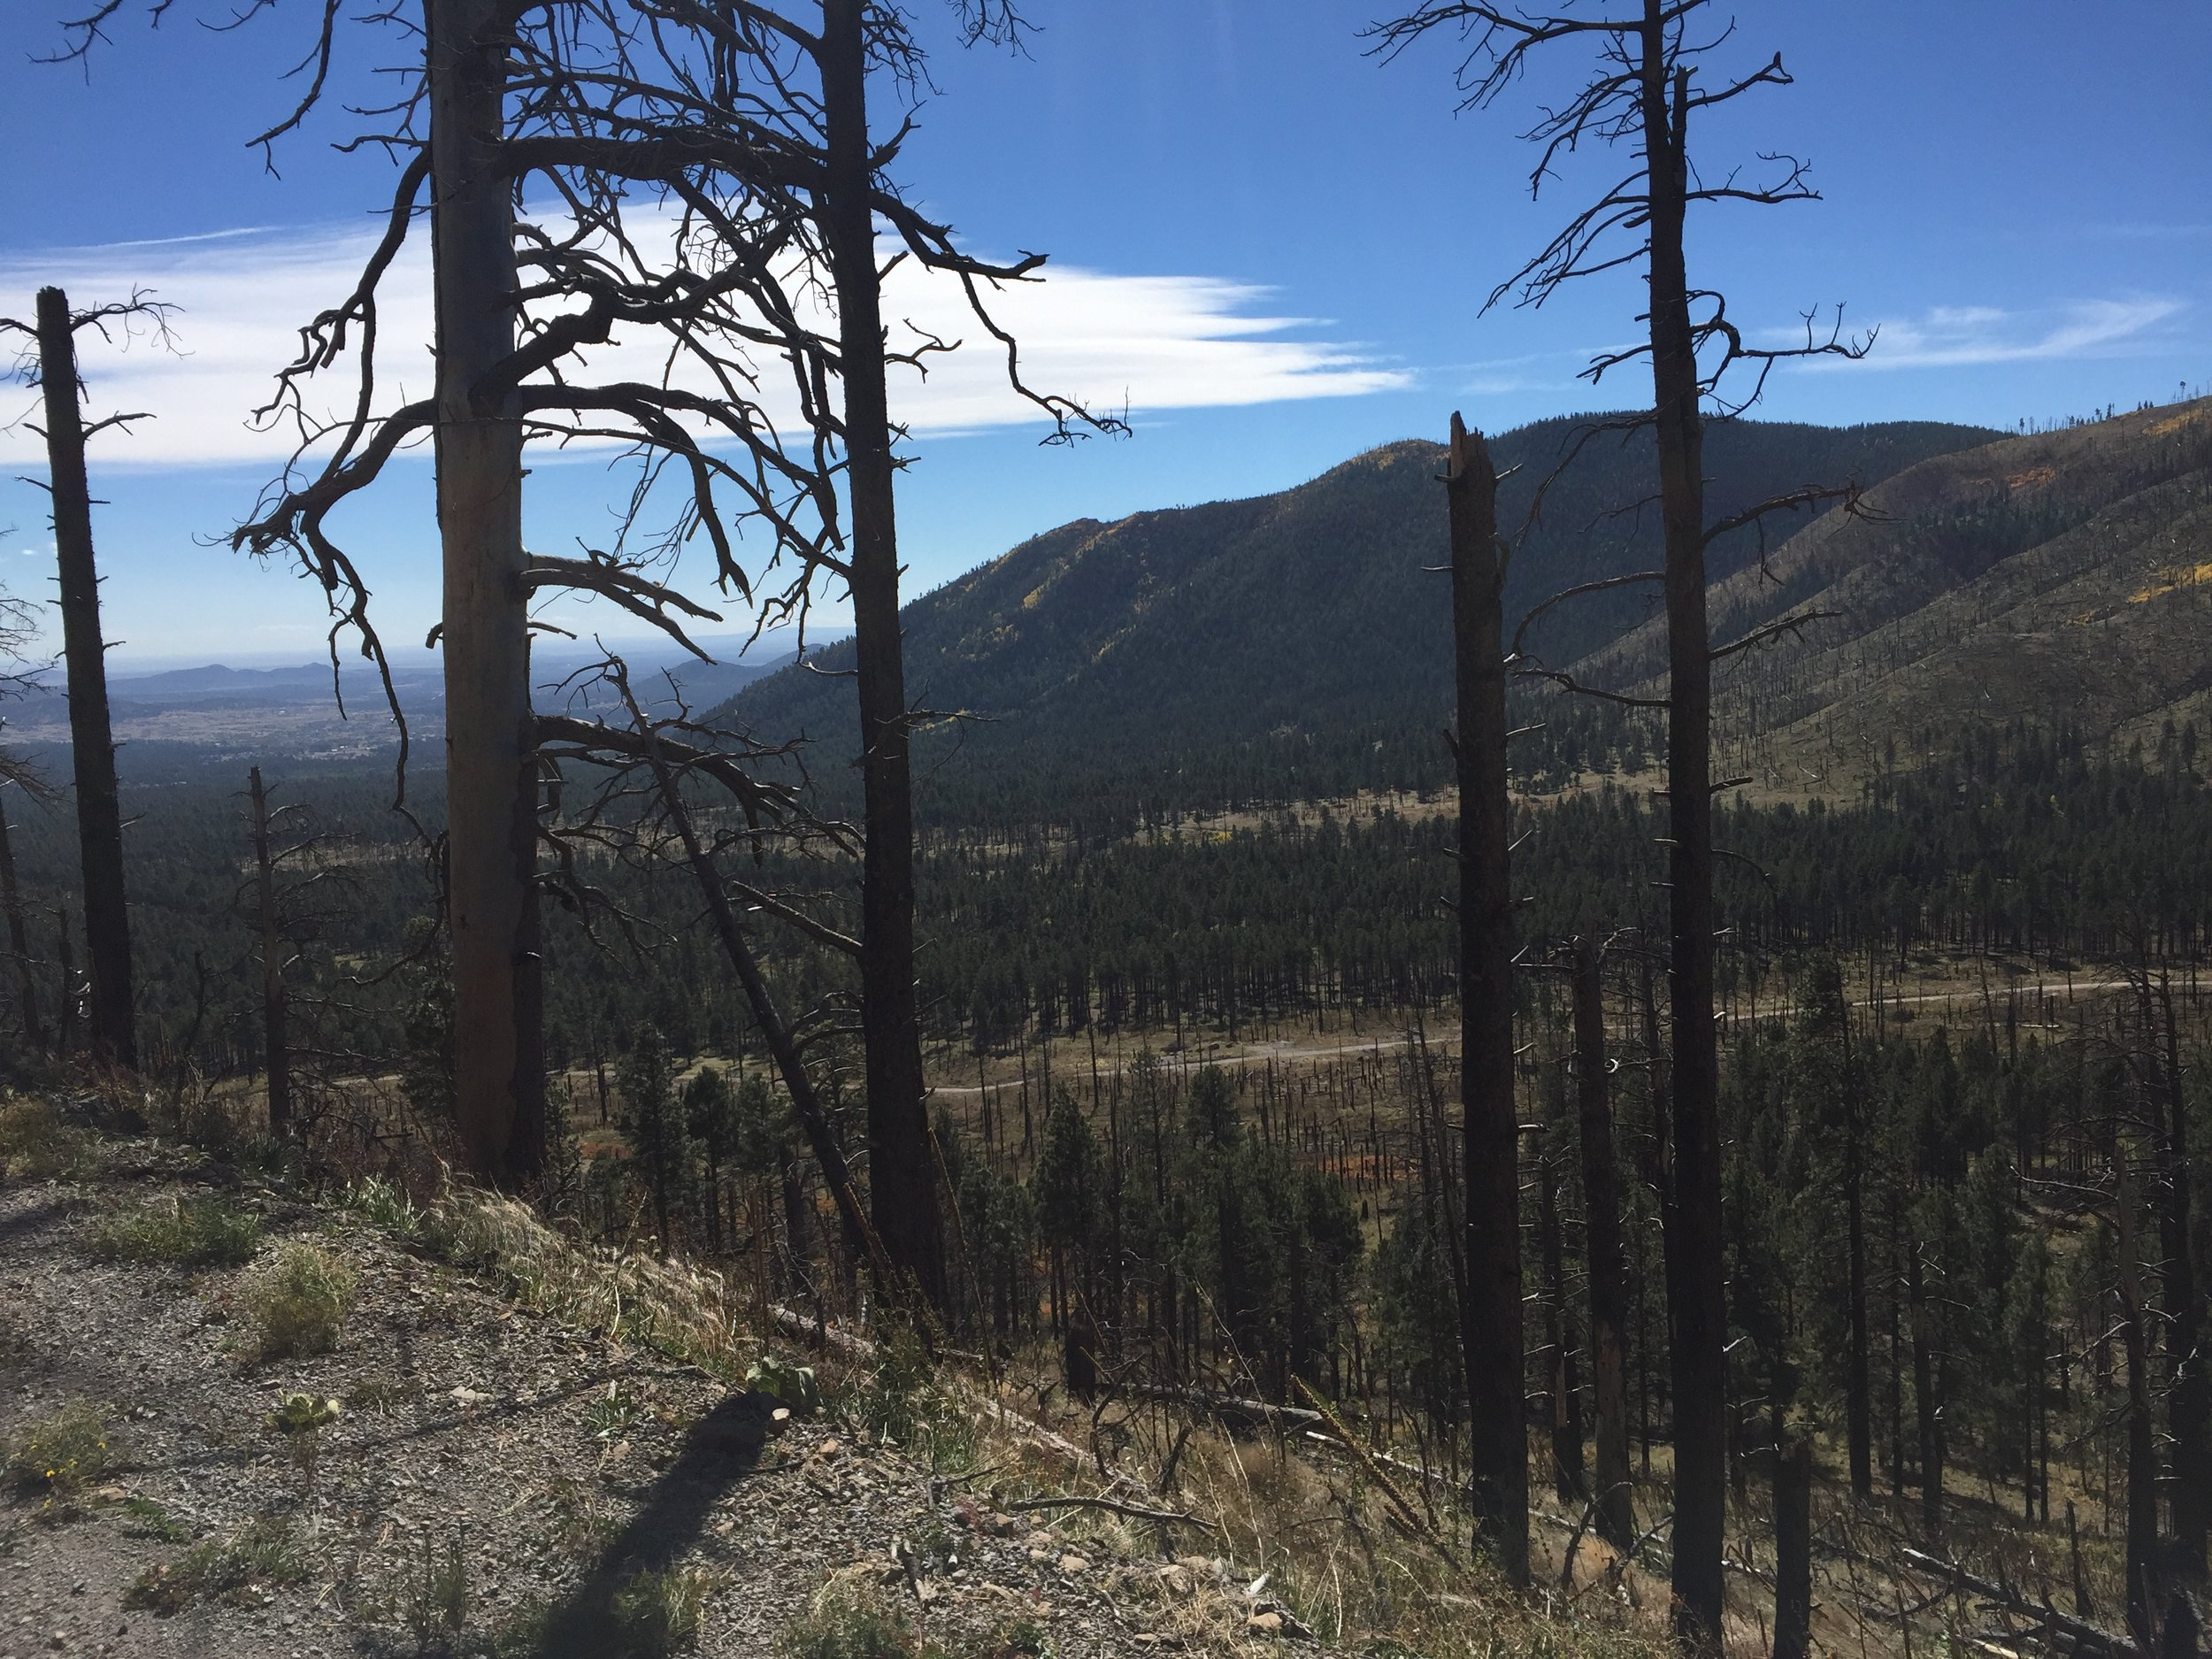 From the burned out mountain looking south.